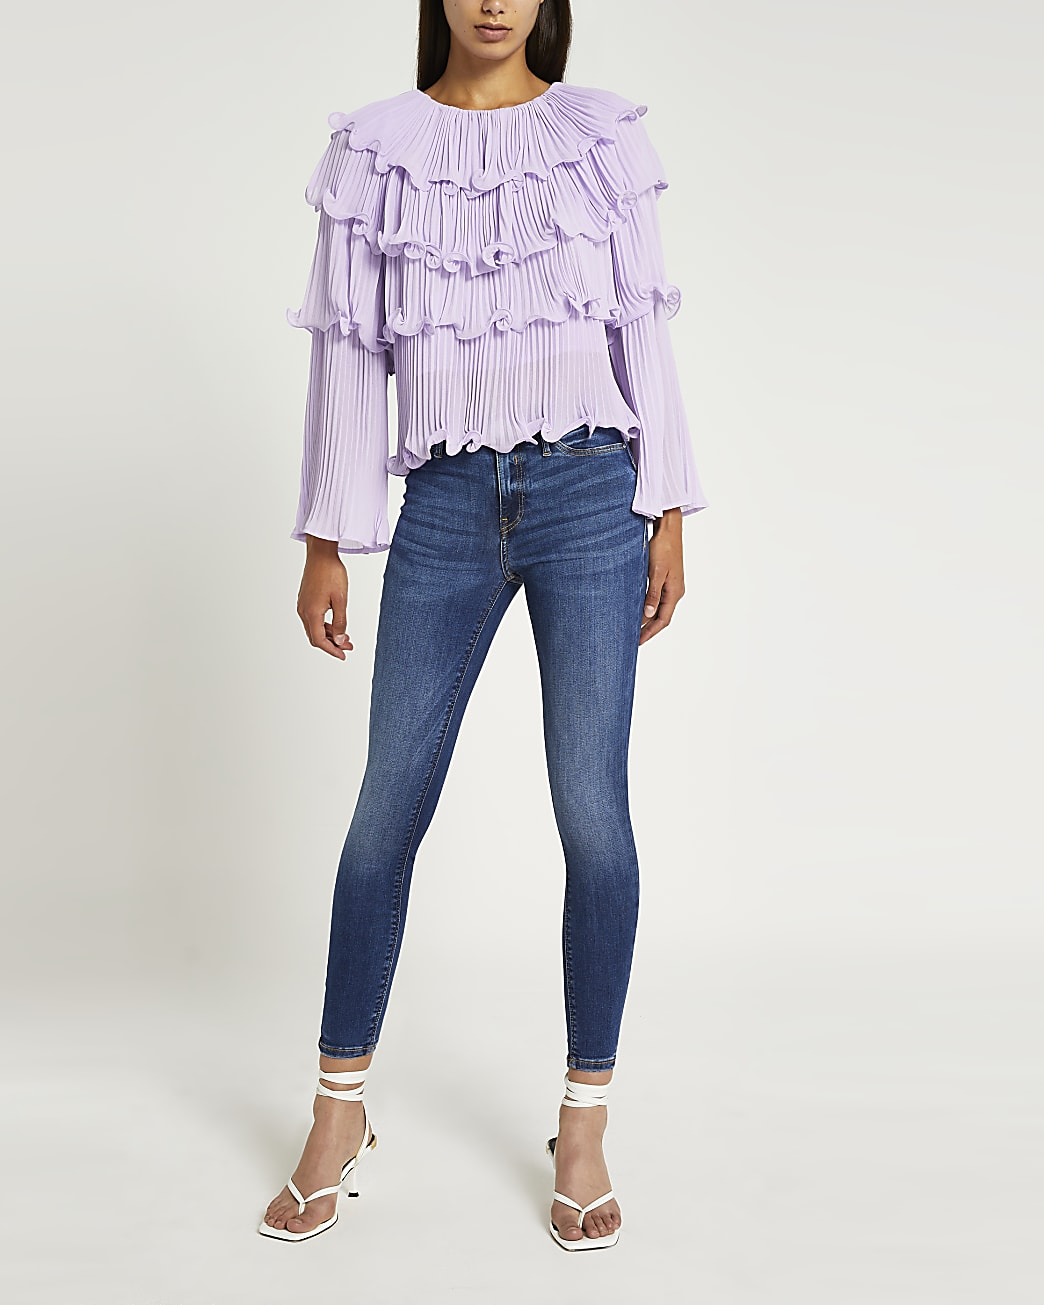 Purple pleated layered blouse top